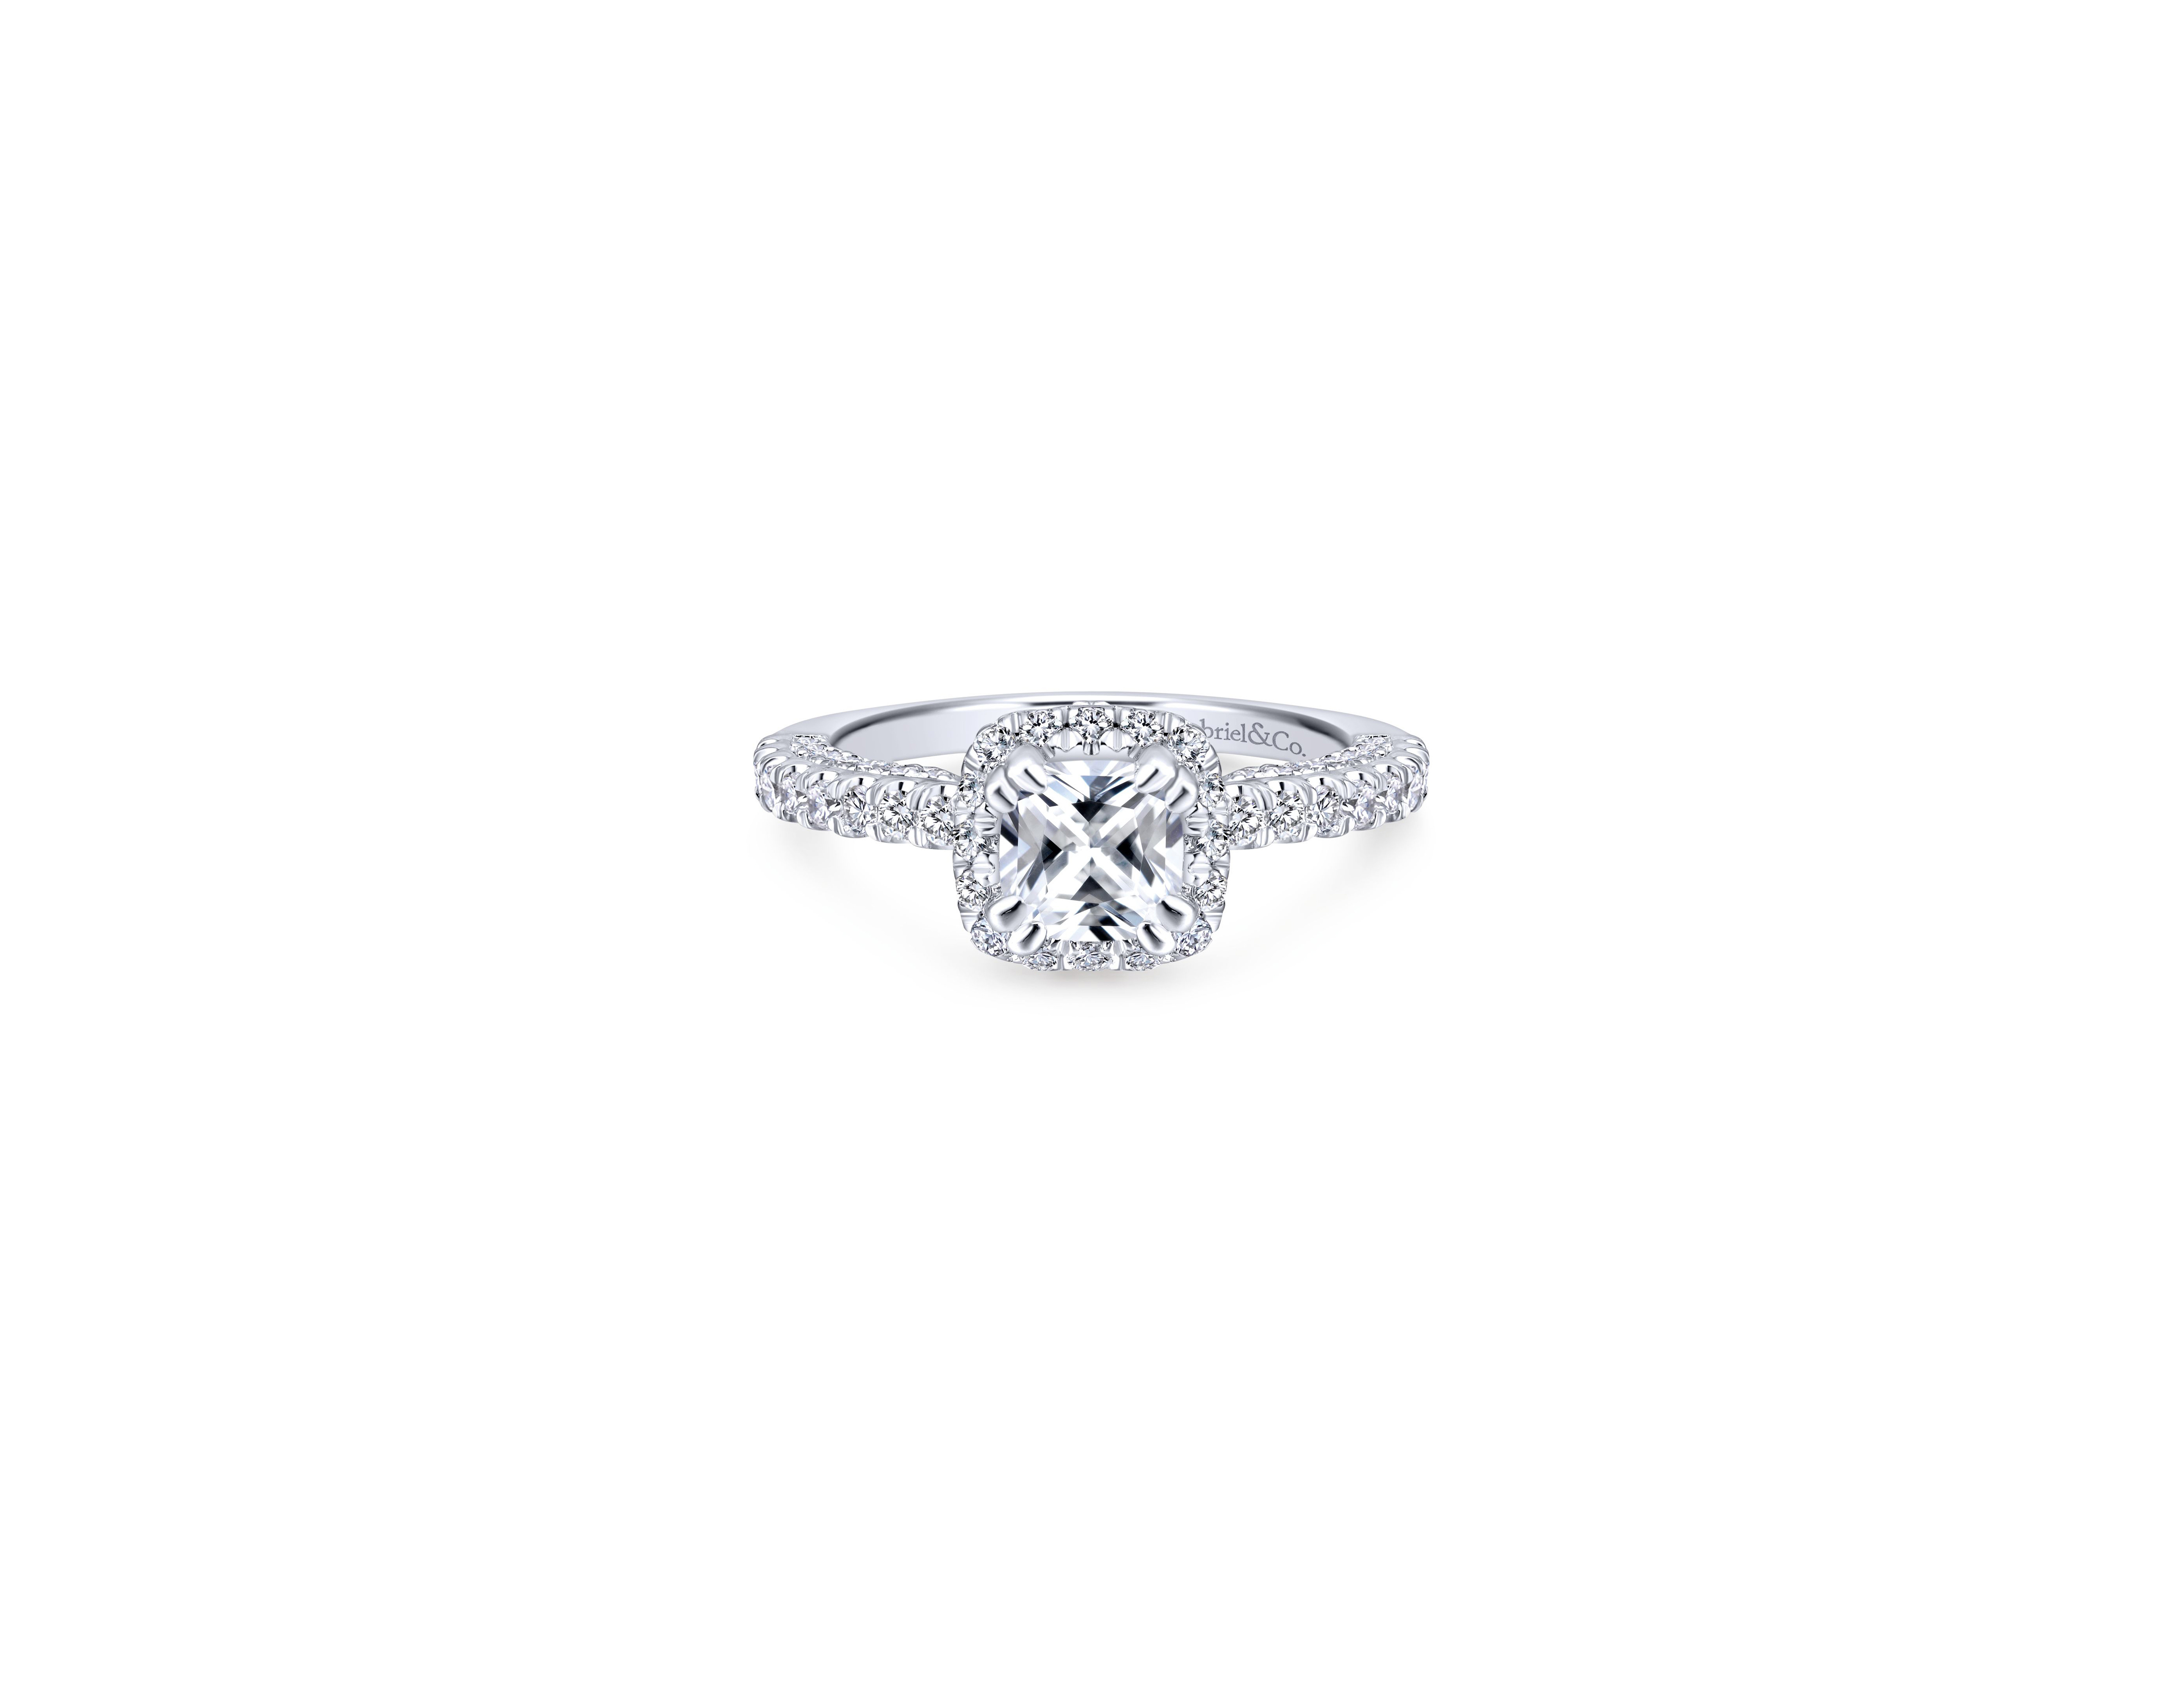 Cushion Cut Diamond Engagement Rings   Martha Stewart Weddings Within Most Recent Champagne And White Diamond Quilted Anniversary Rings In White Gold (Gallery 25 of 25)